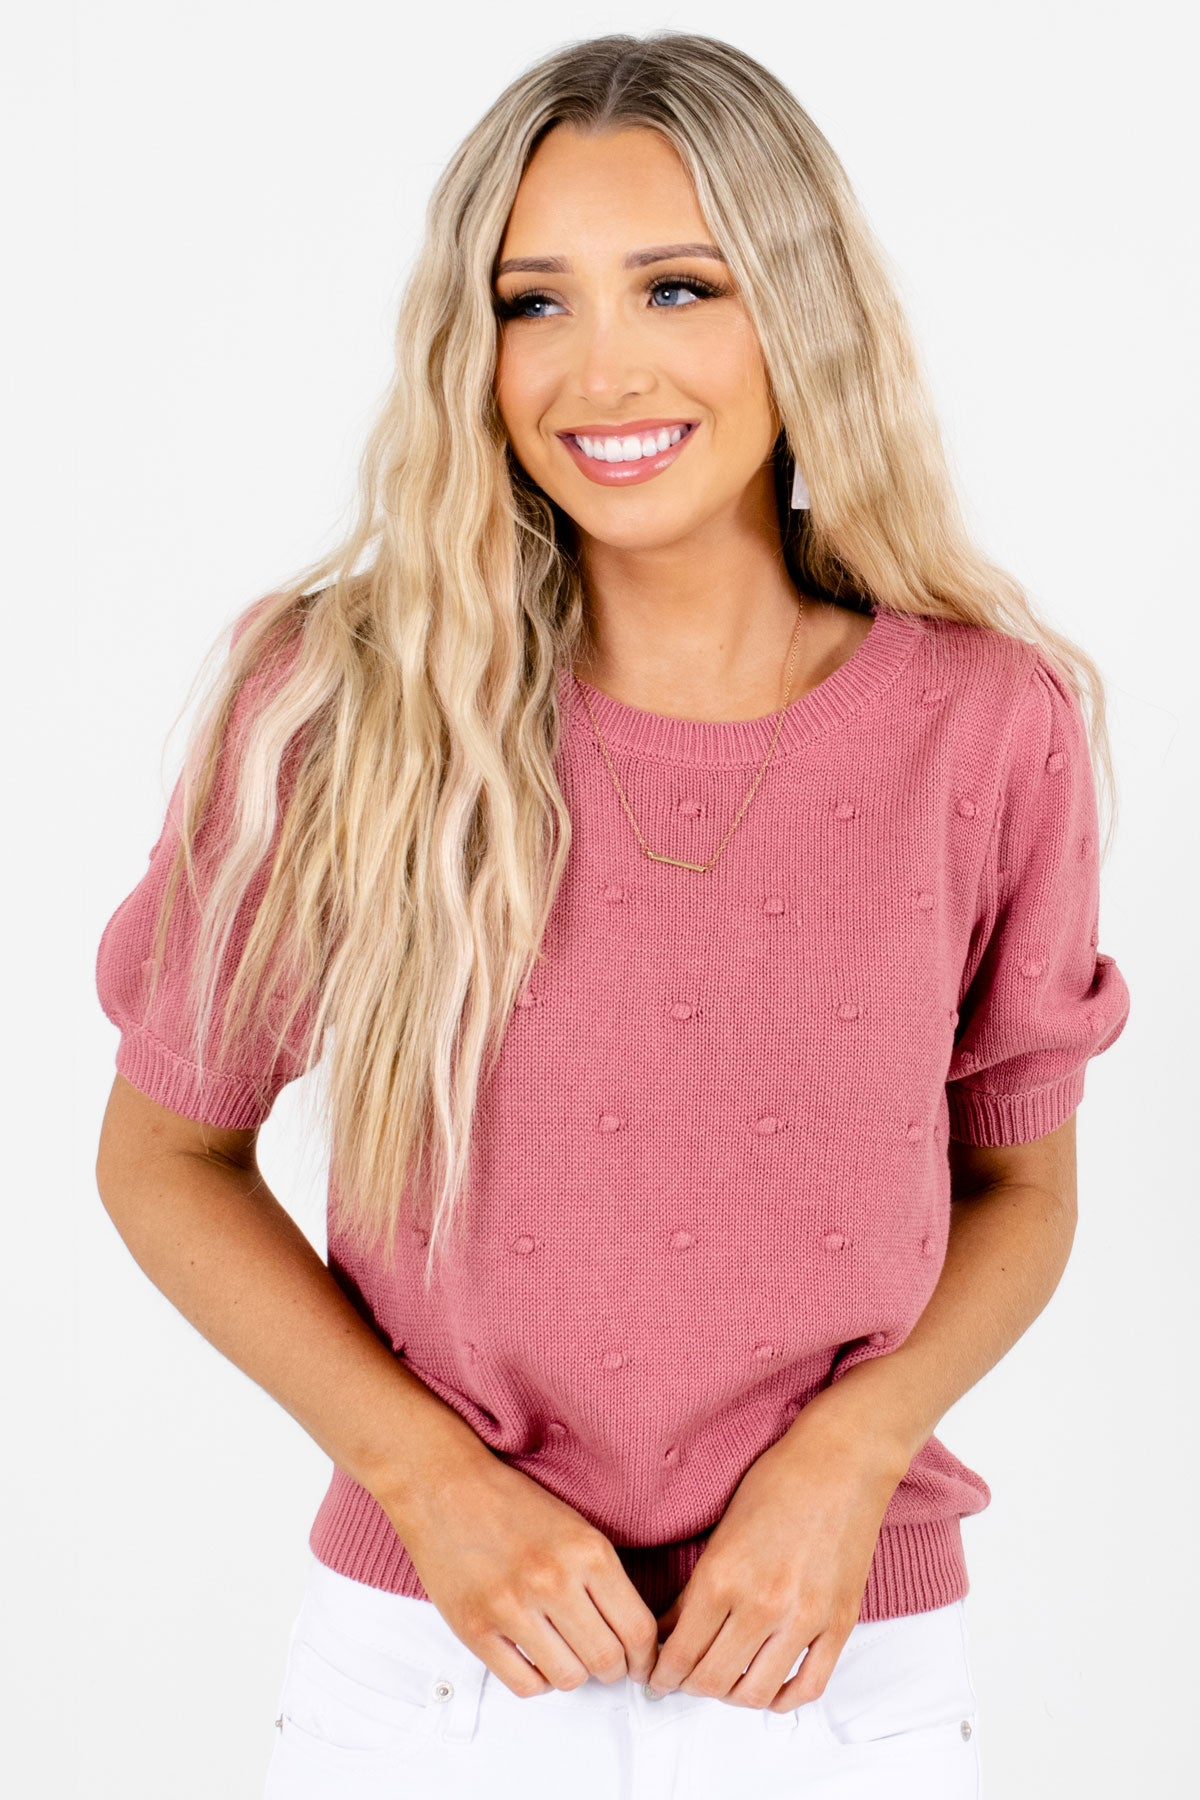 Pink High-Quality Knit Material Boutique Tops for Women